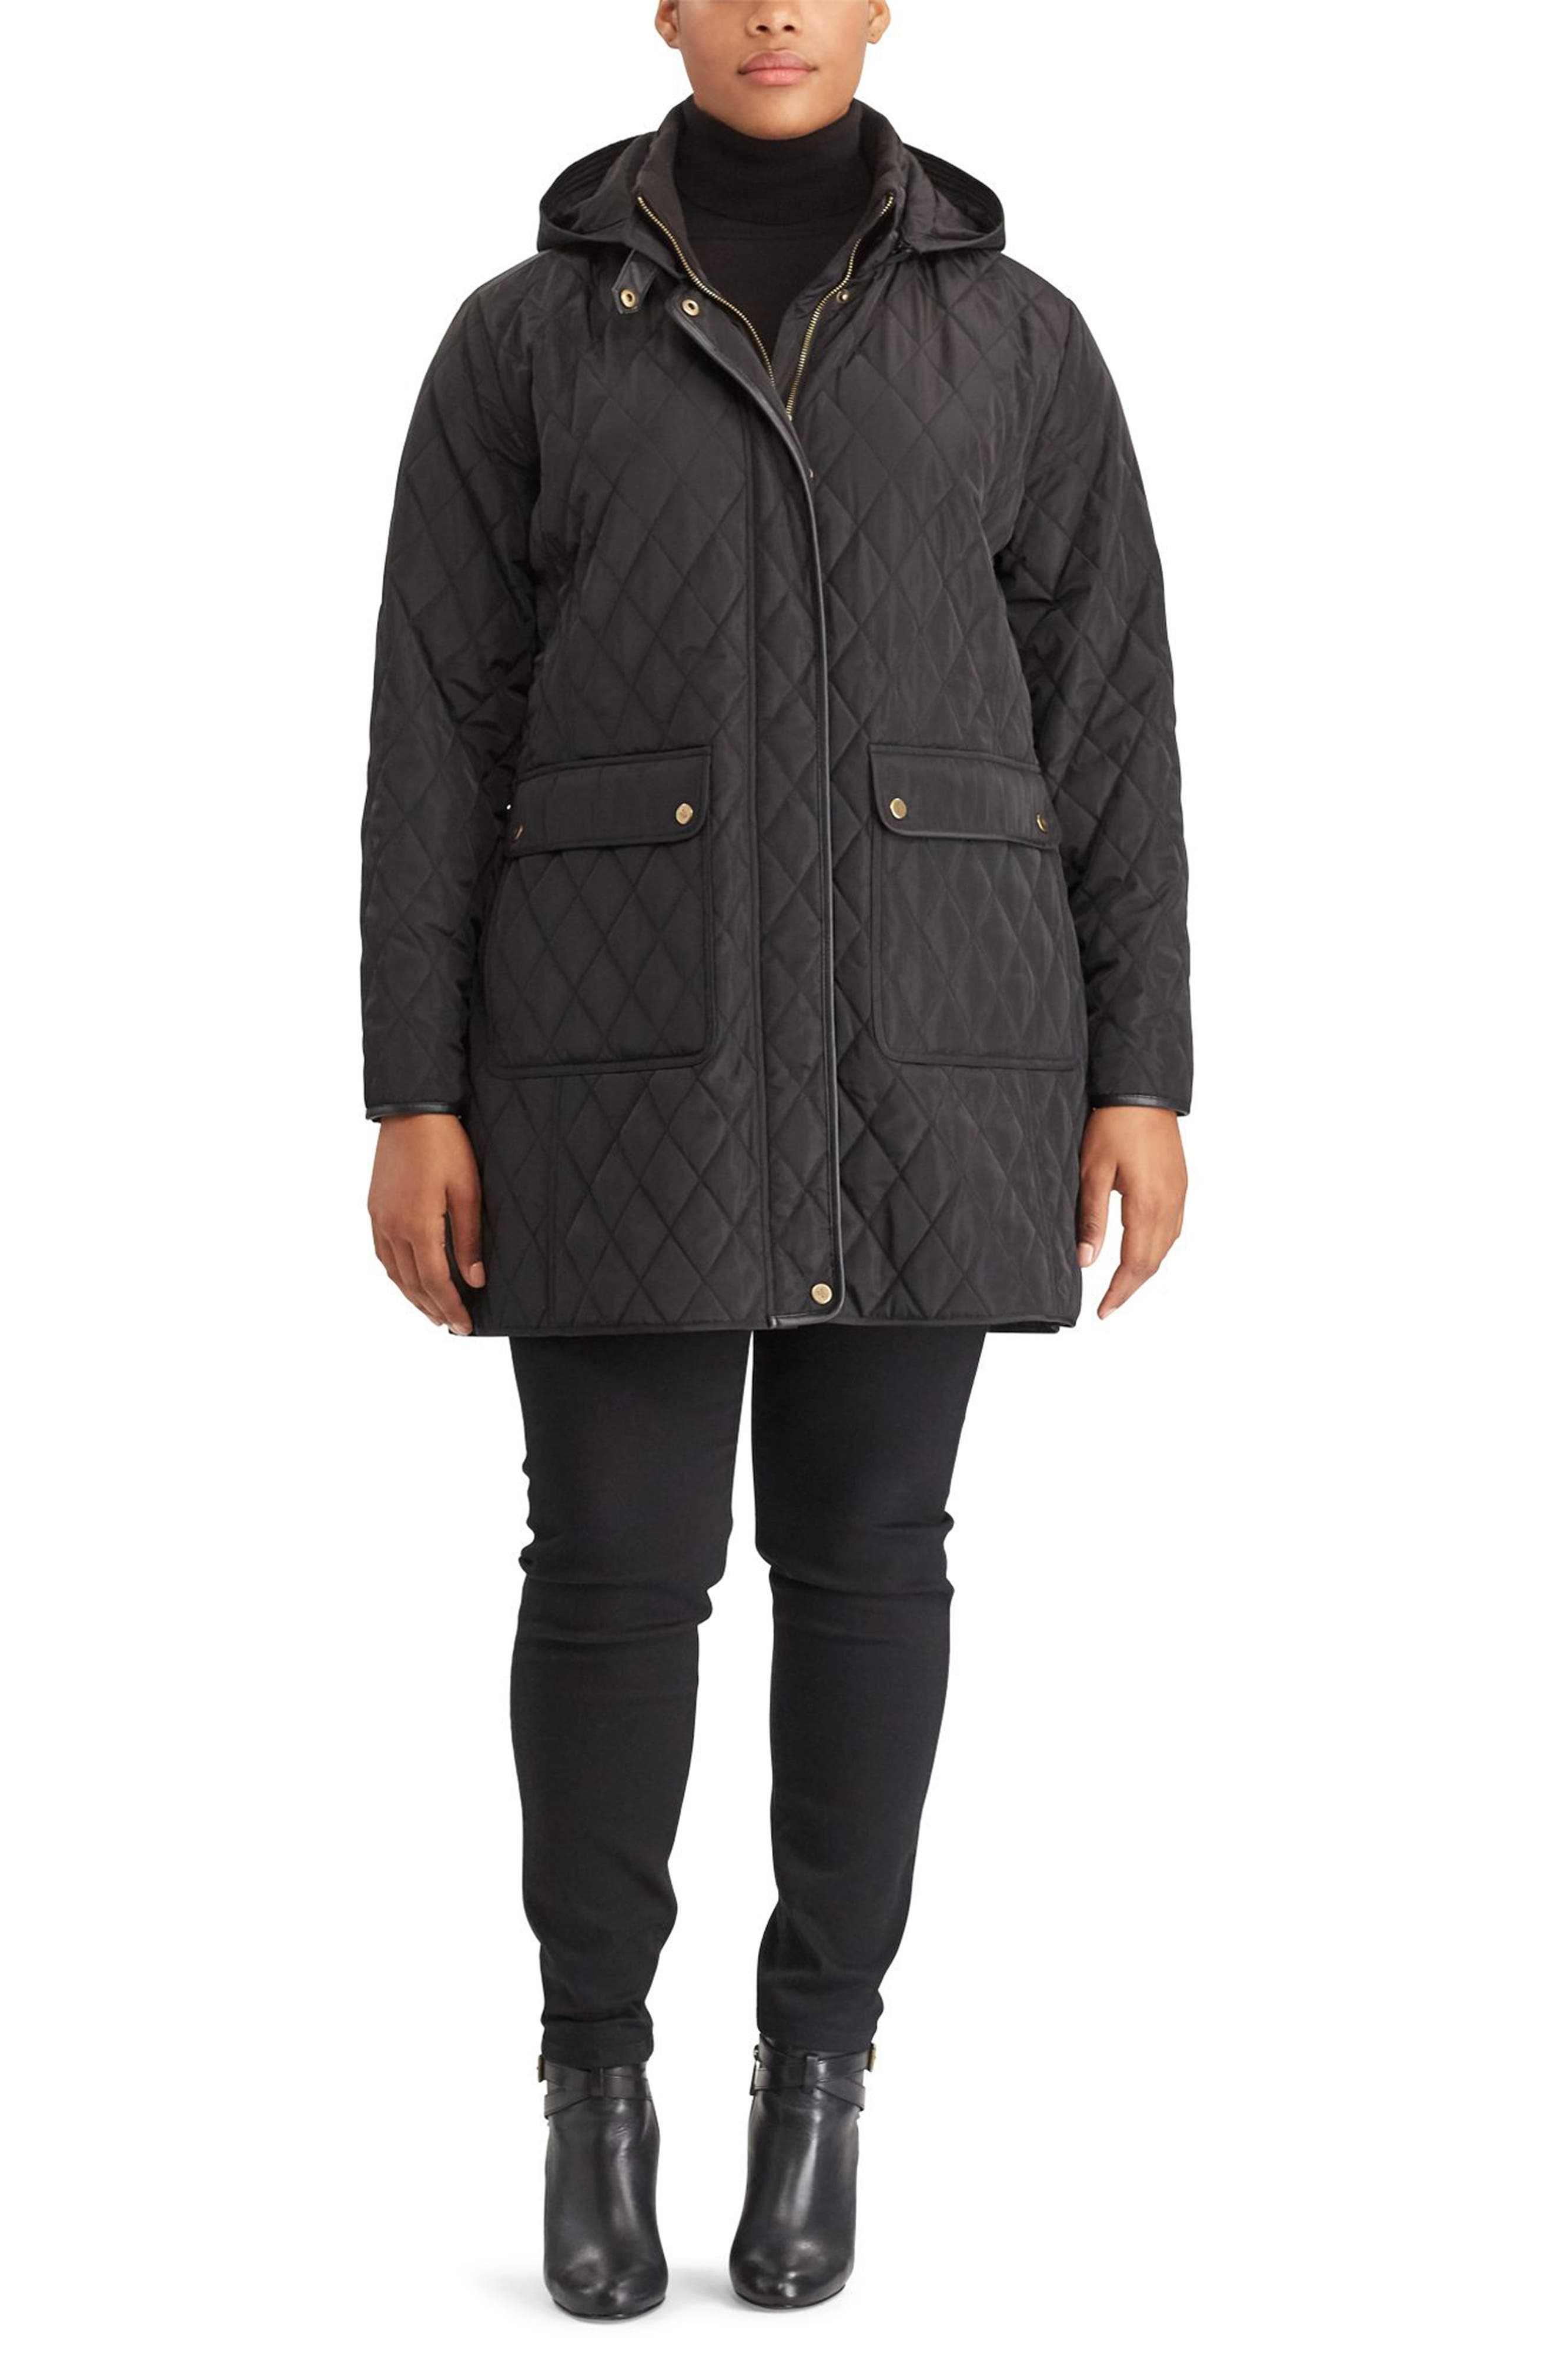 Diamond Quilted Jacket with Faux Leather Trim,                             Alternate thumbnail 4, color,                             001